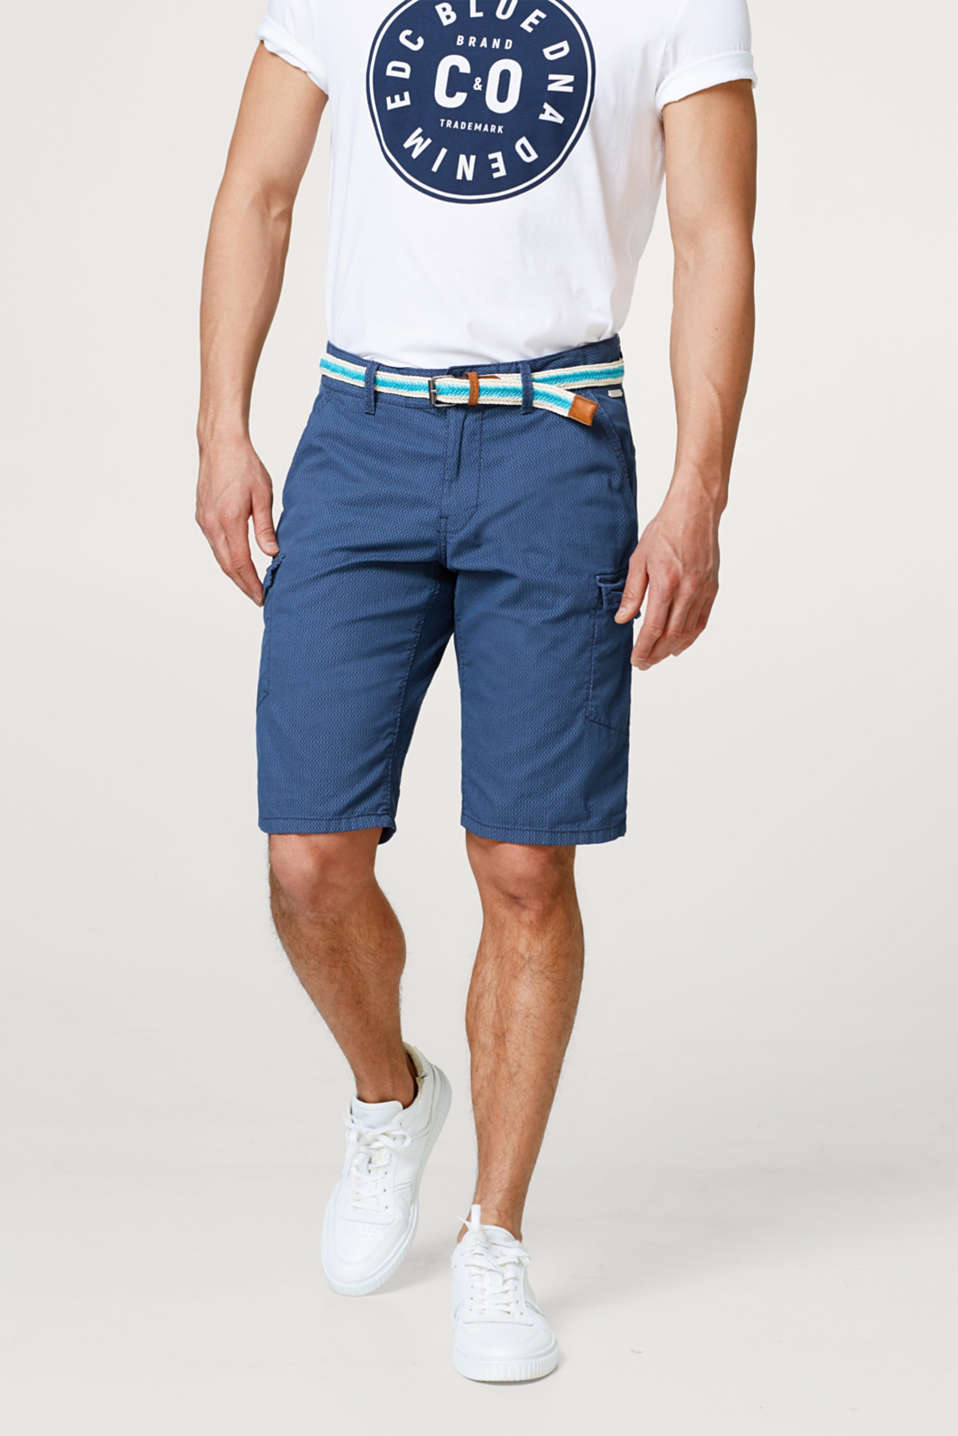 edc - Cargo shorts with a fine textured print and belt